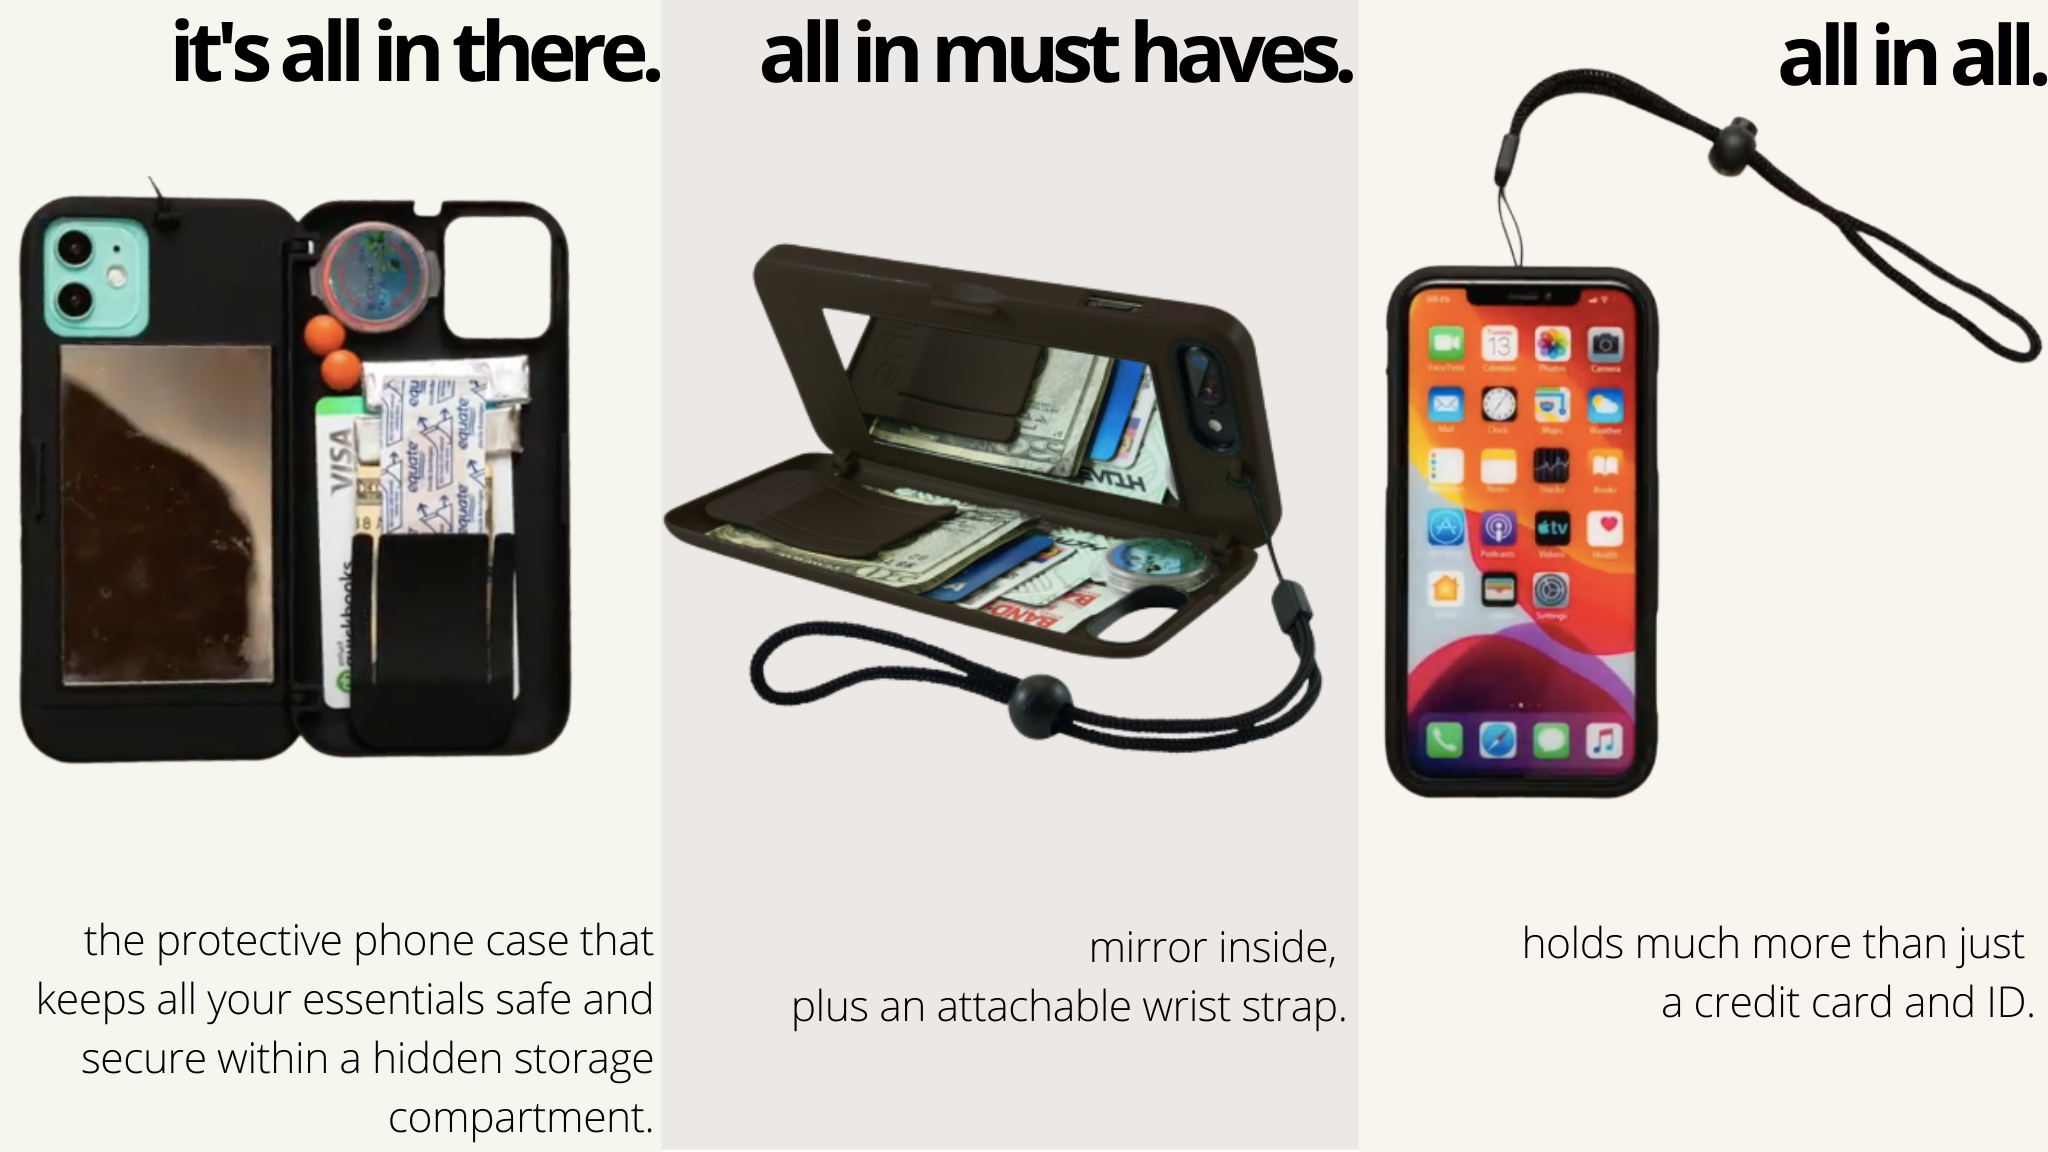 all in case - image of features of phone case